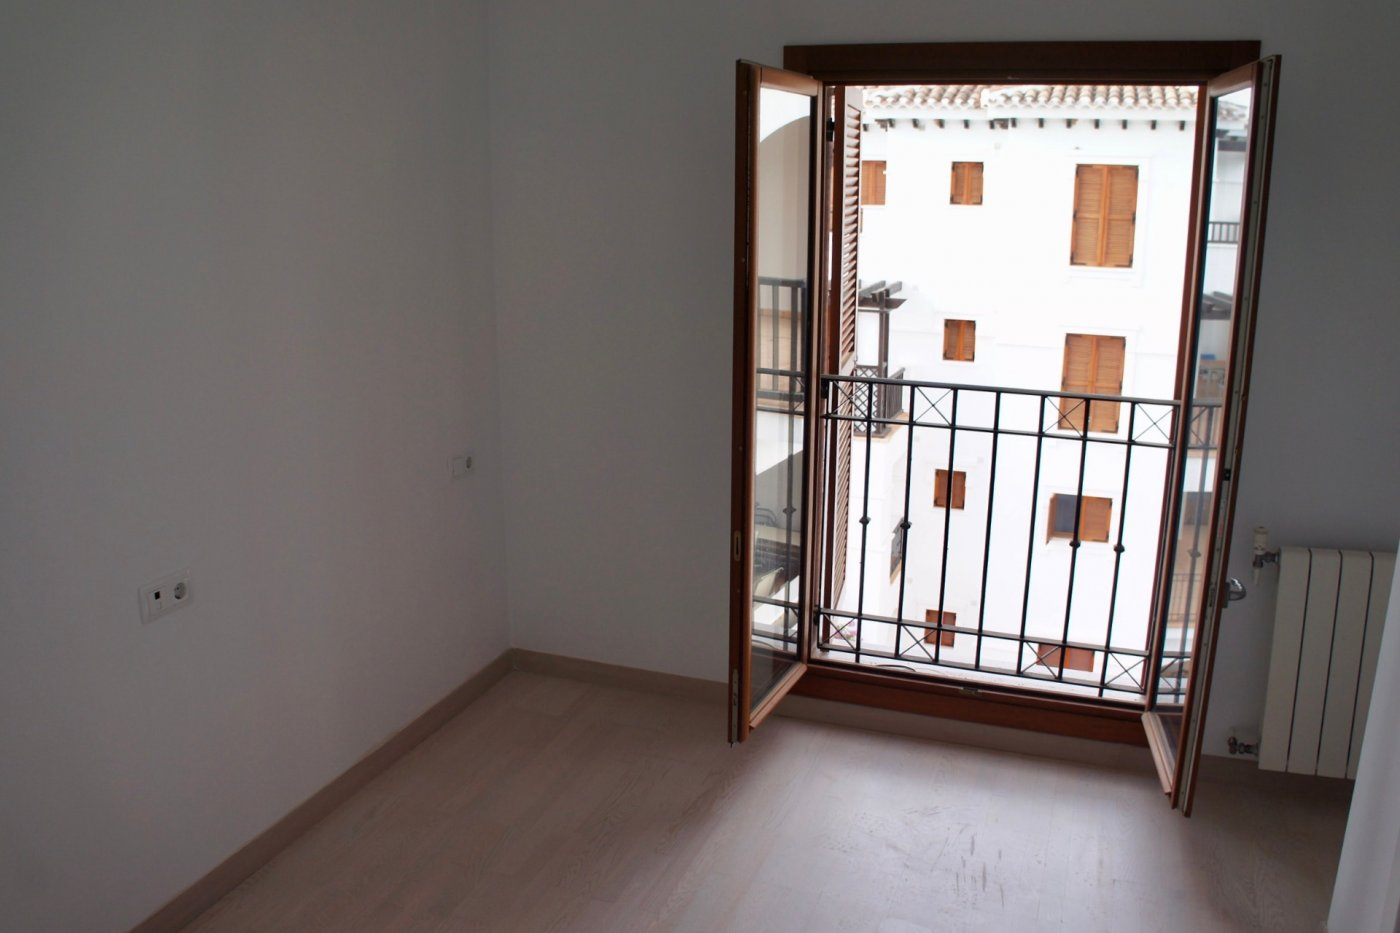 Image 8 Apartment ref 3265-03114 for sale in El Valle Golf Resort Spain - Quality Homes Costa Cálida